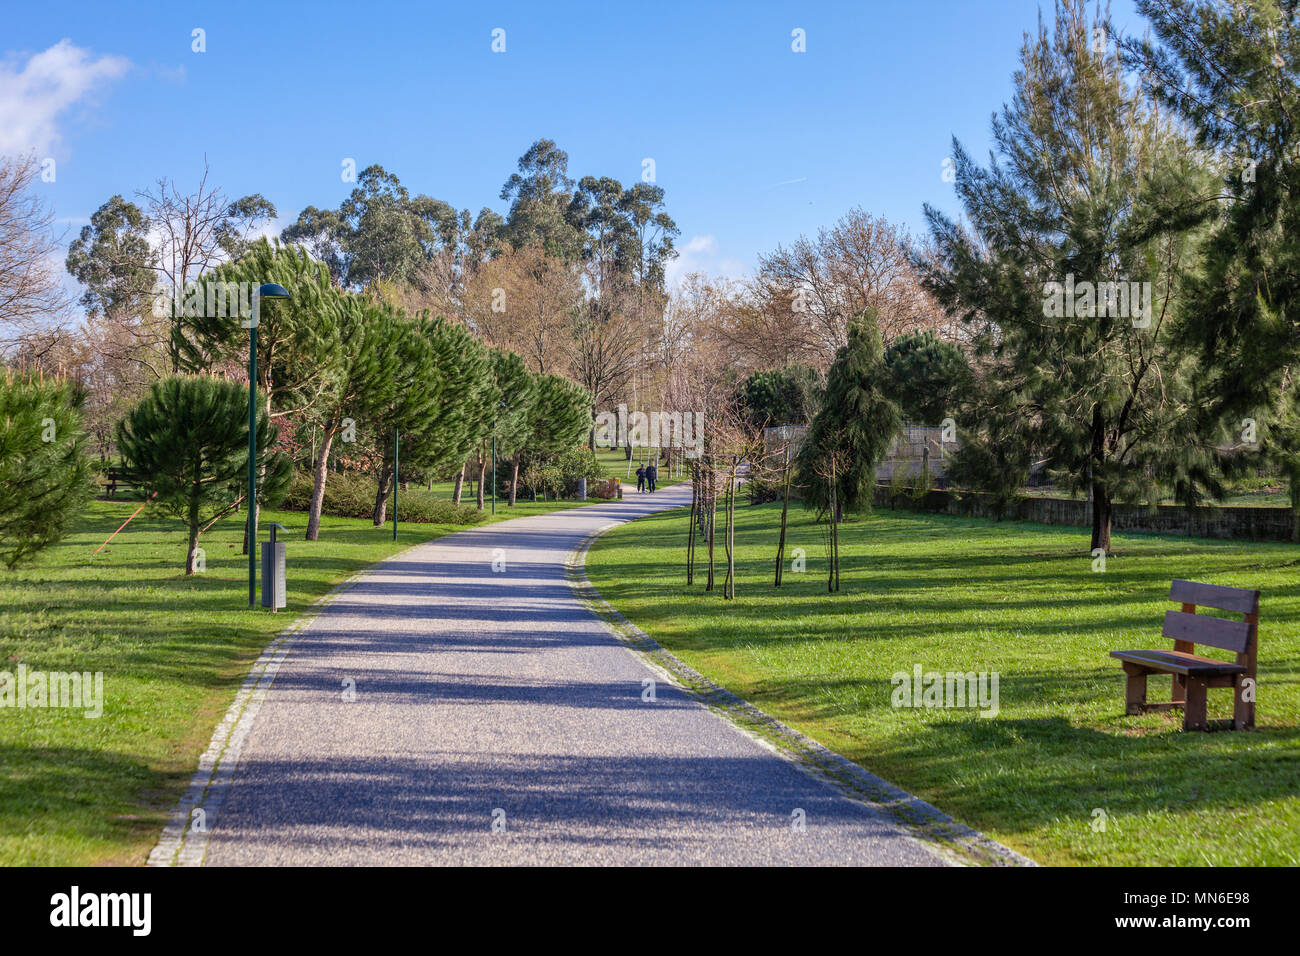 Empty path, track, trail or pathway through the trees and green grass lawn in Parque da Devesa Urban Park. Vila Nova de Famalicao, Portugal - Stock Image